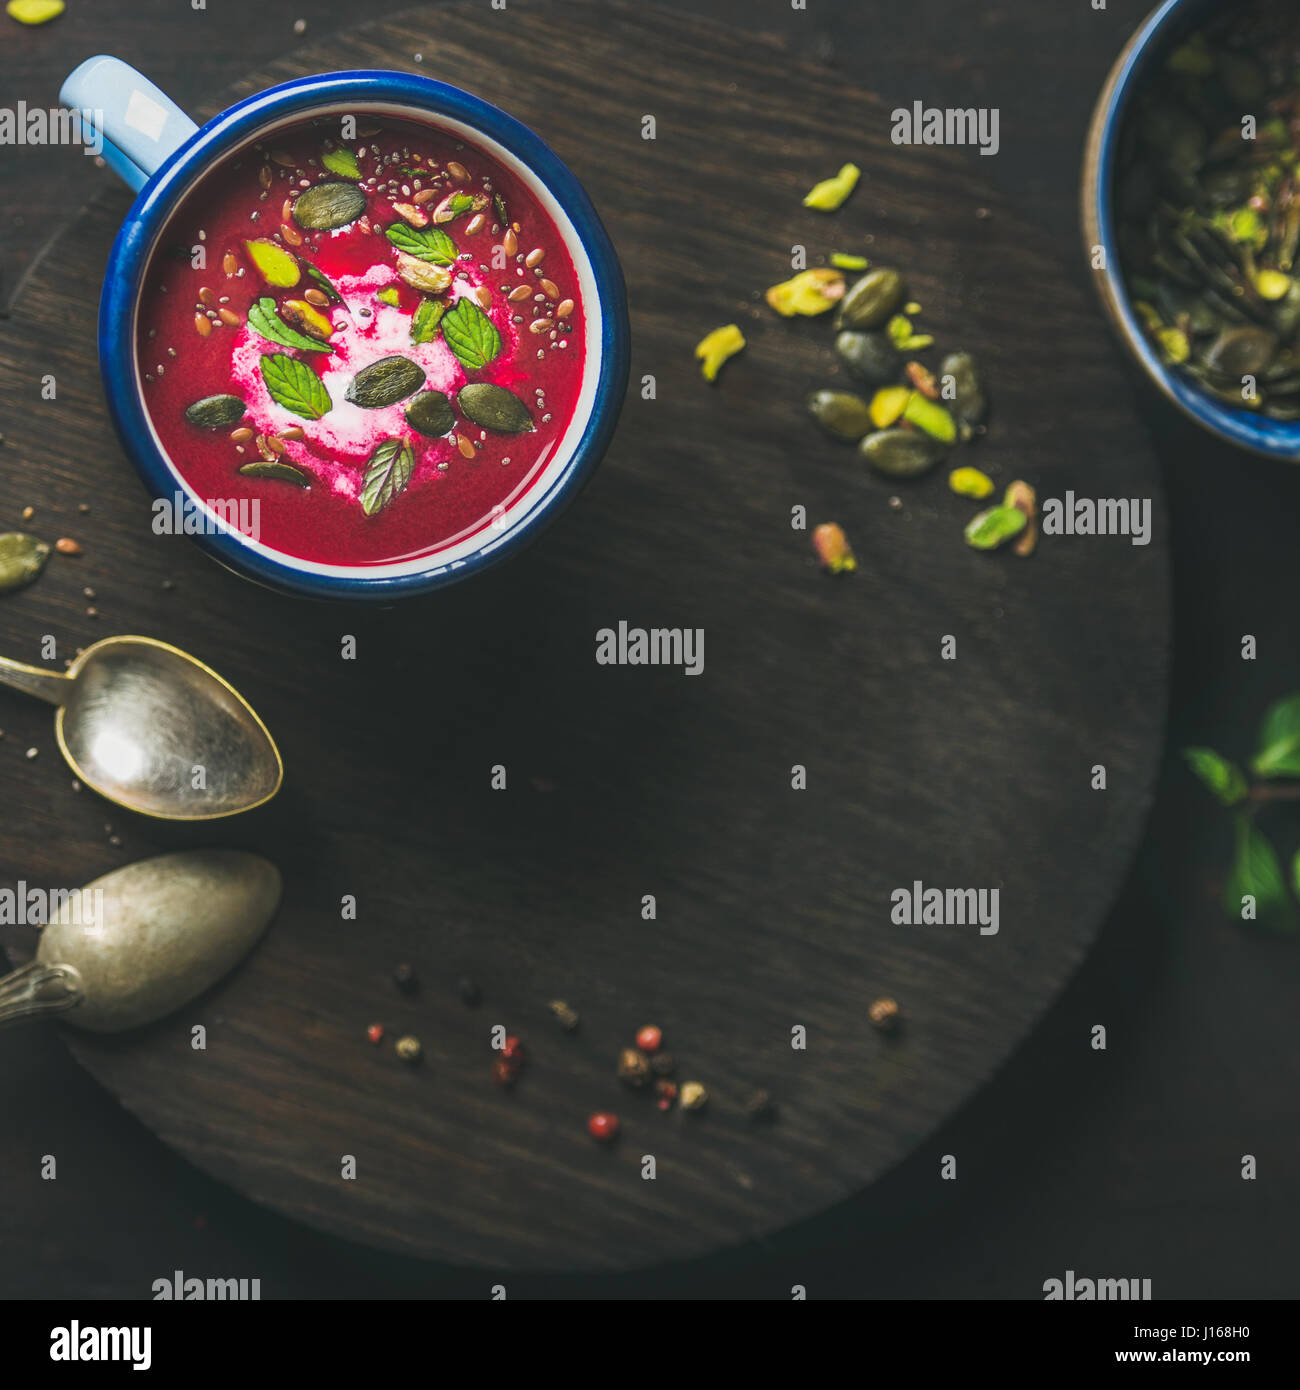 Dieting beetroot soup with mint, pistachio and seeds, copy space - Stock Image